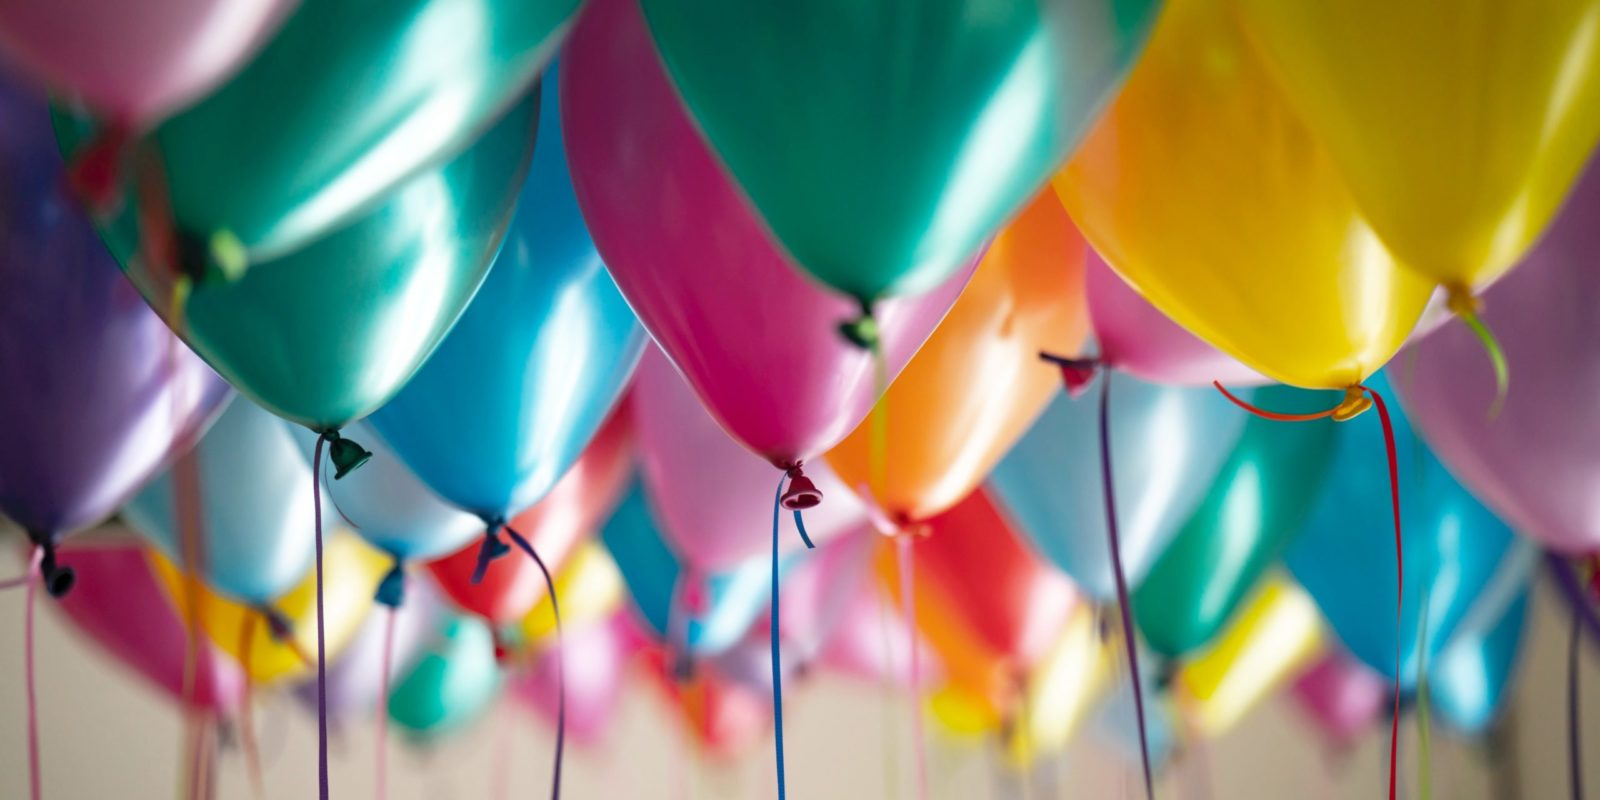 sobriety milestones can be celebrated like other achievements